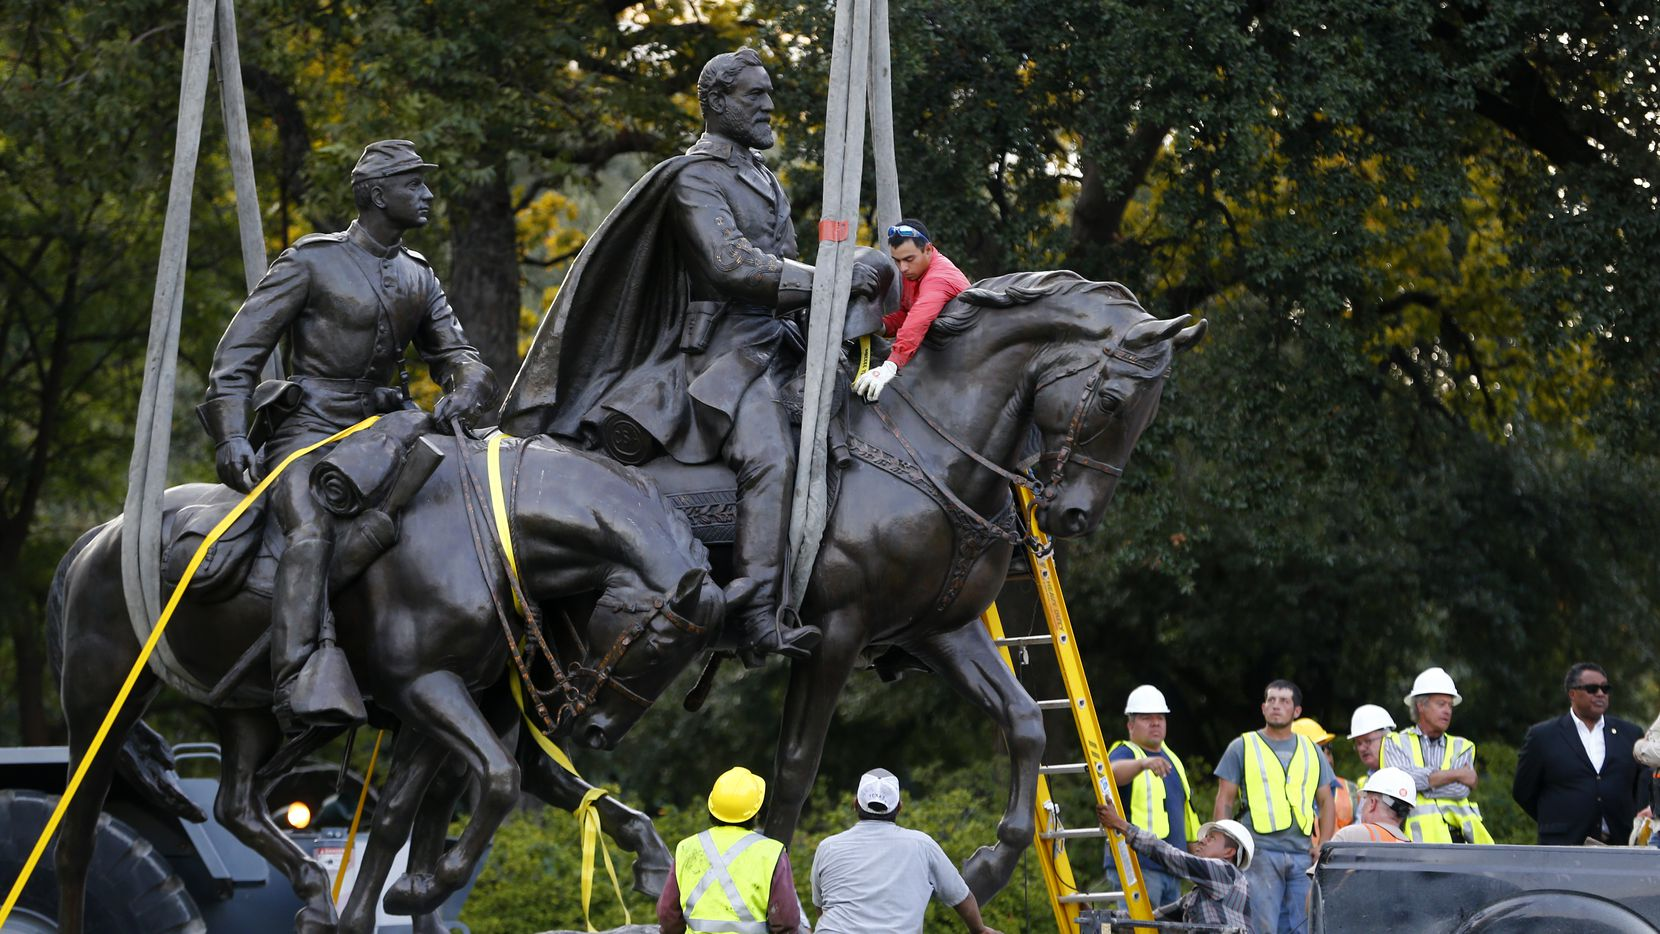 Workers harness the Robert E. Lee statue to a trailer for its removal from Robert E. Lee Park in Dallas on Sept. 14, 2017.